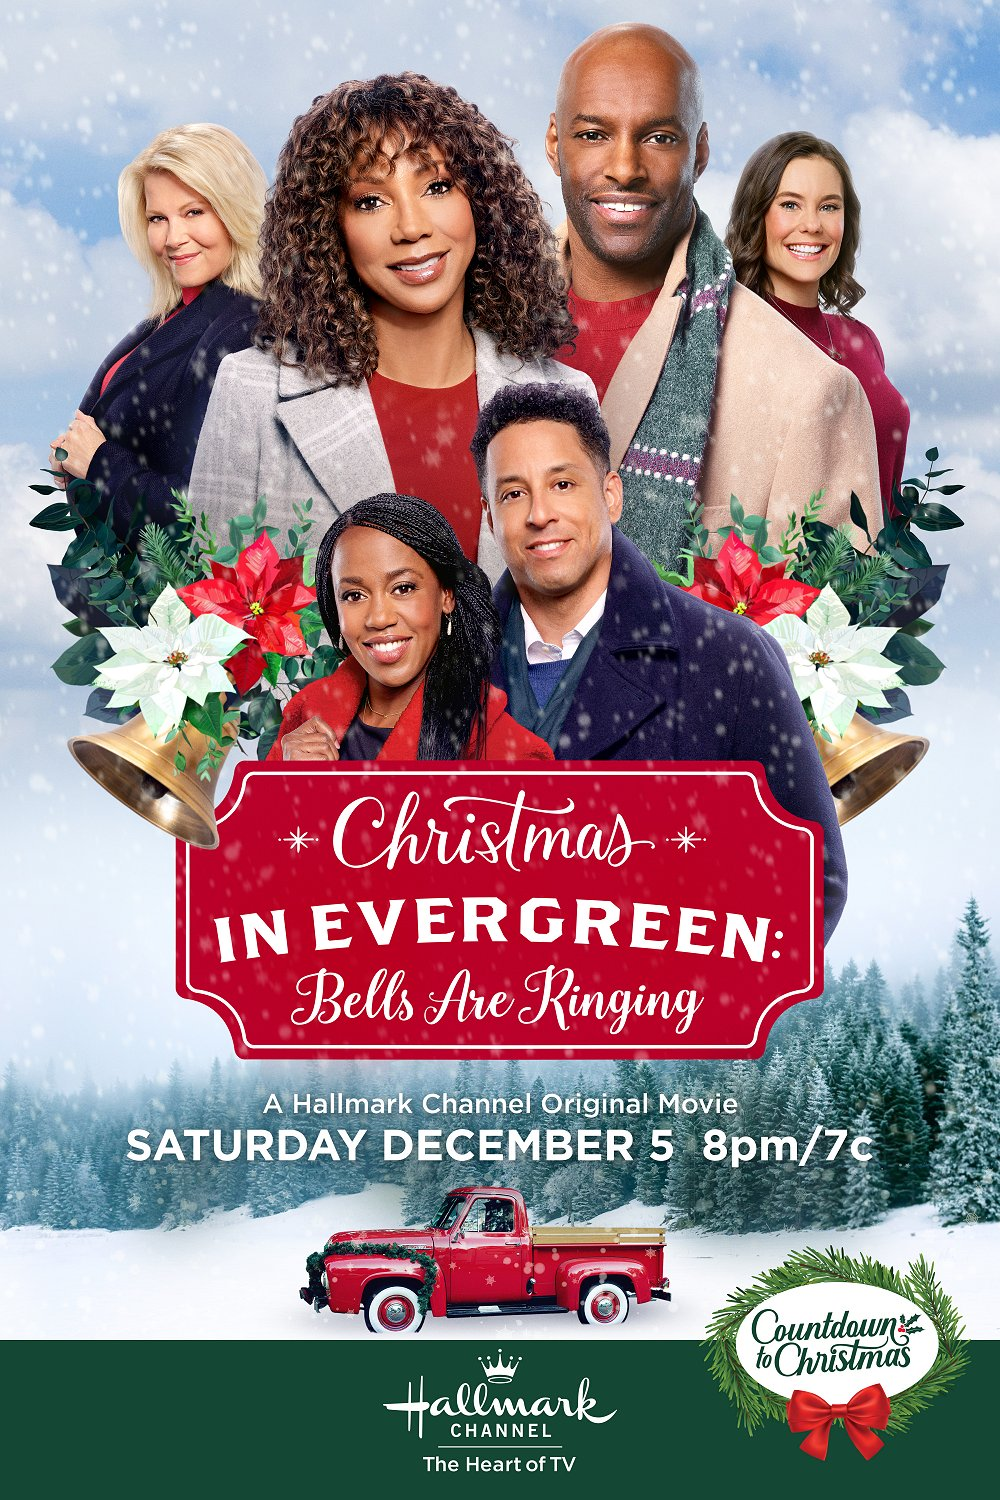 watch Christmas in Evergreen: Bells Are Ringing on soap2day